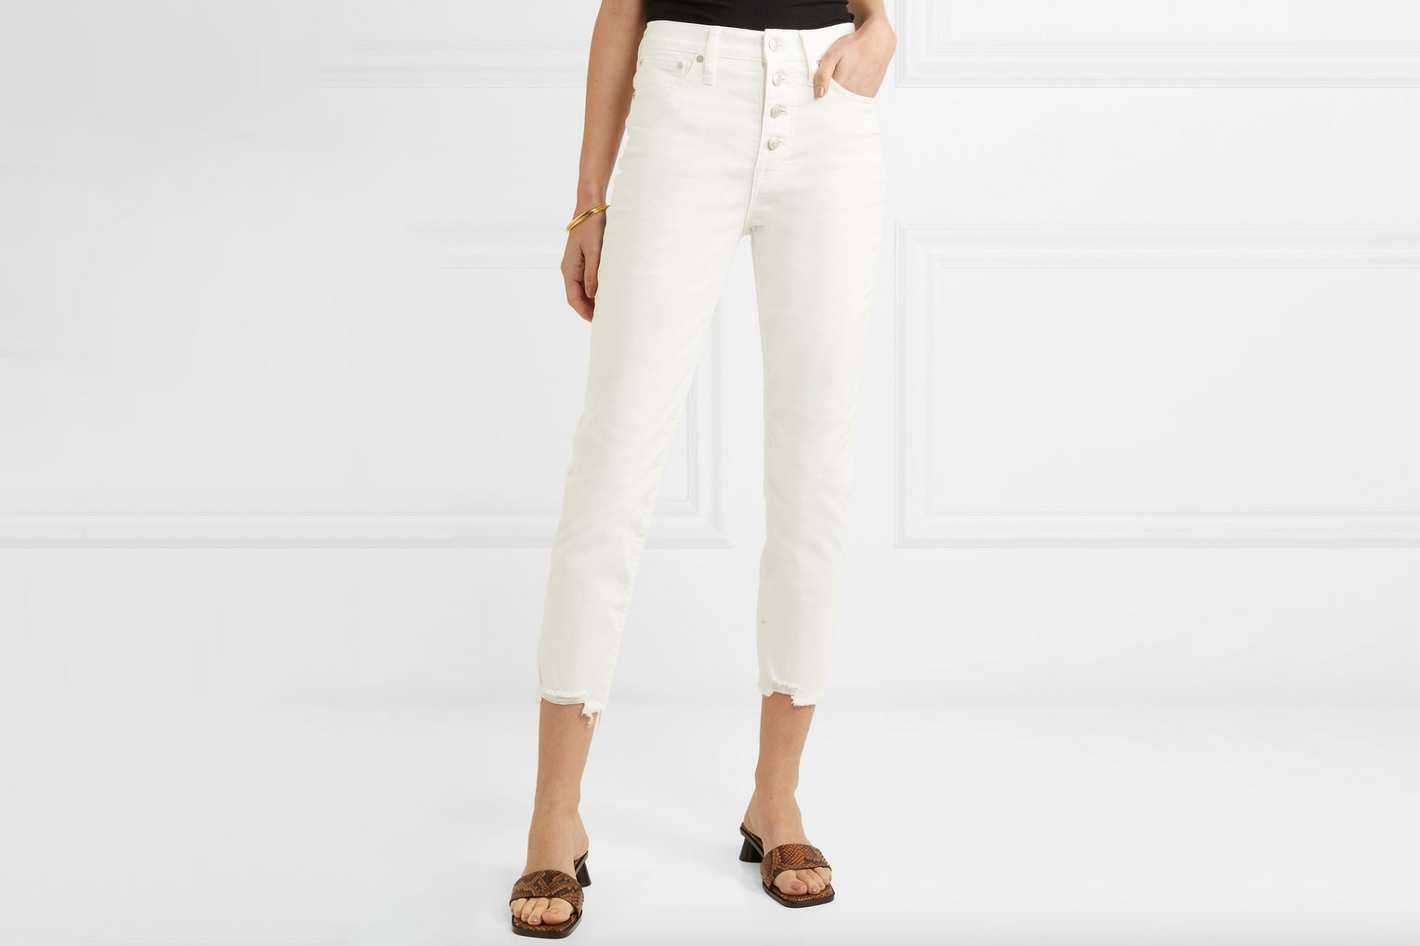 Madewell The Perfect Vintage Cropped Jeans